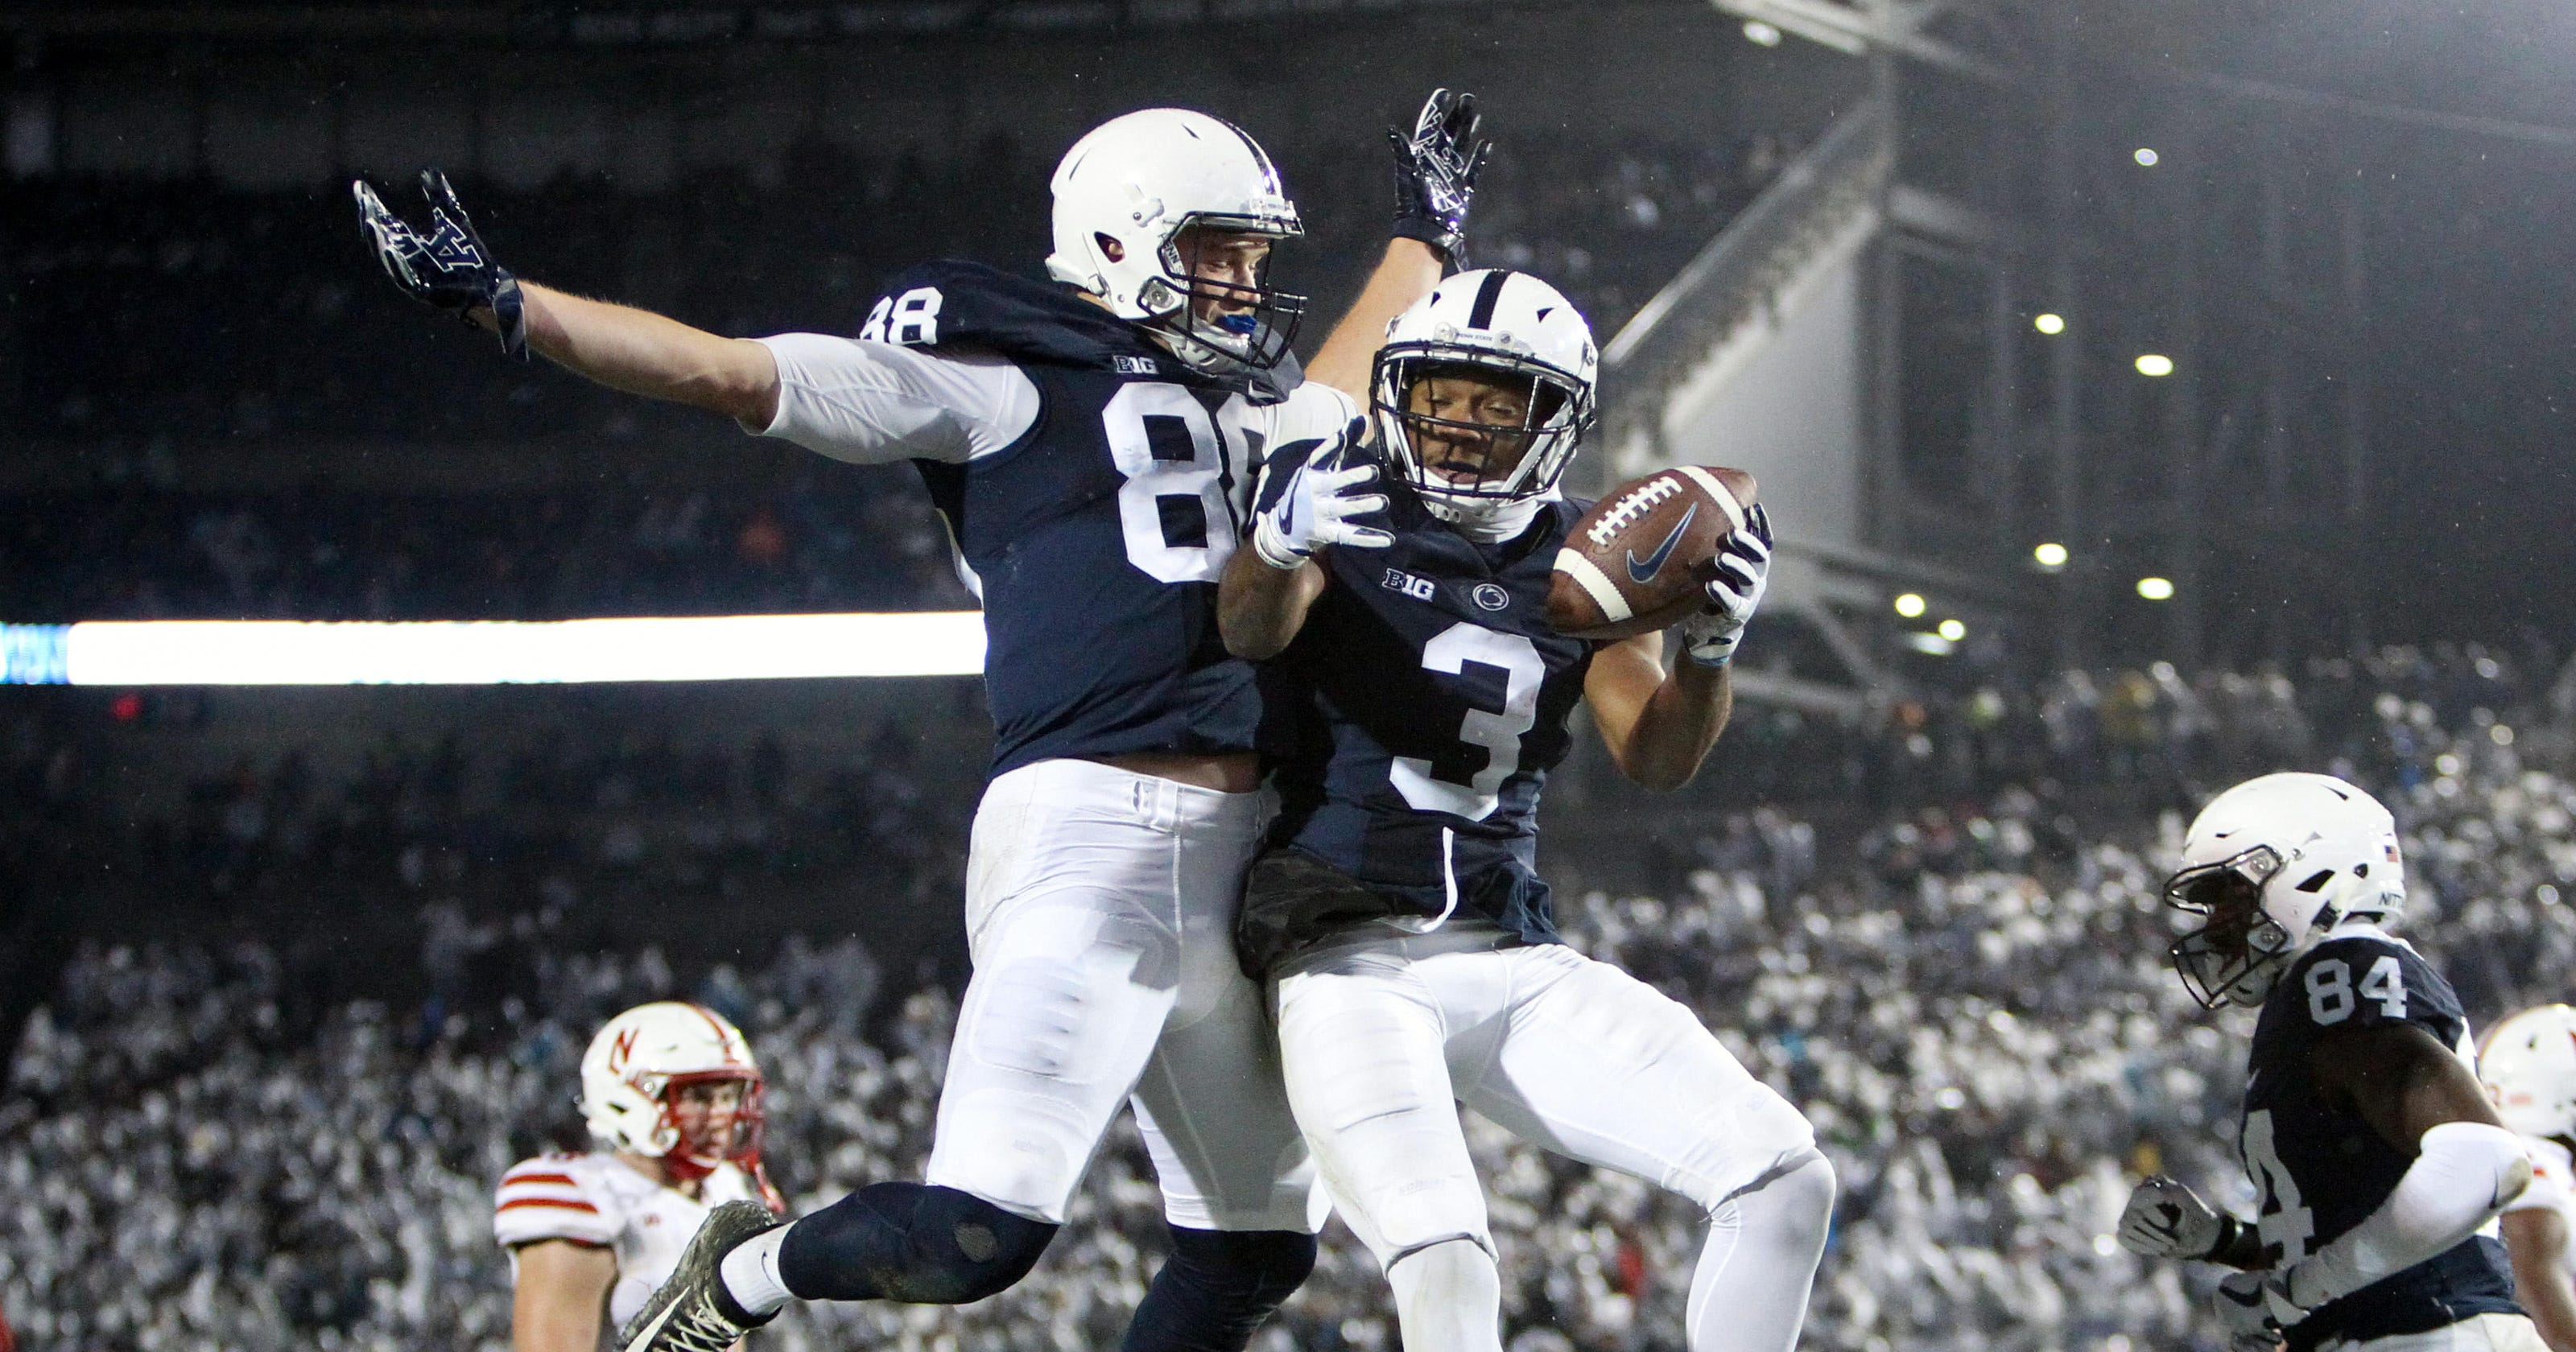 Penn State Football Schedule 2020.Pack Adds Games With Penn State Uc Davis In 2020